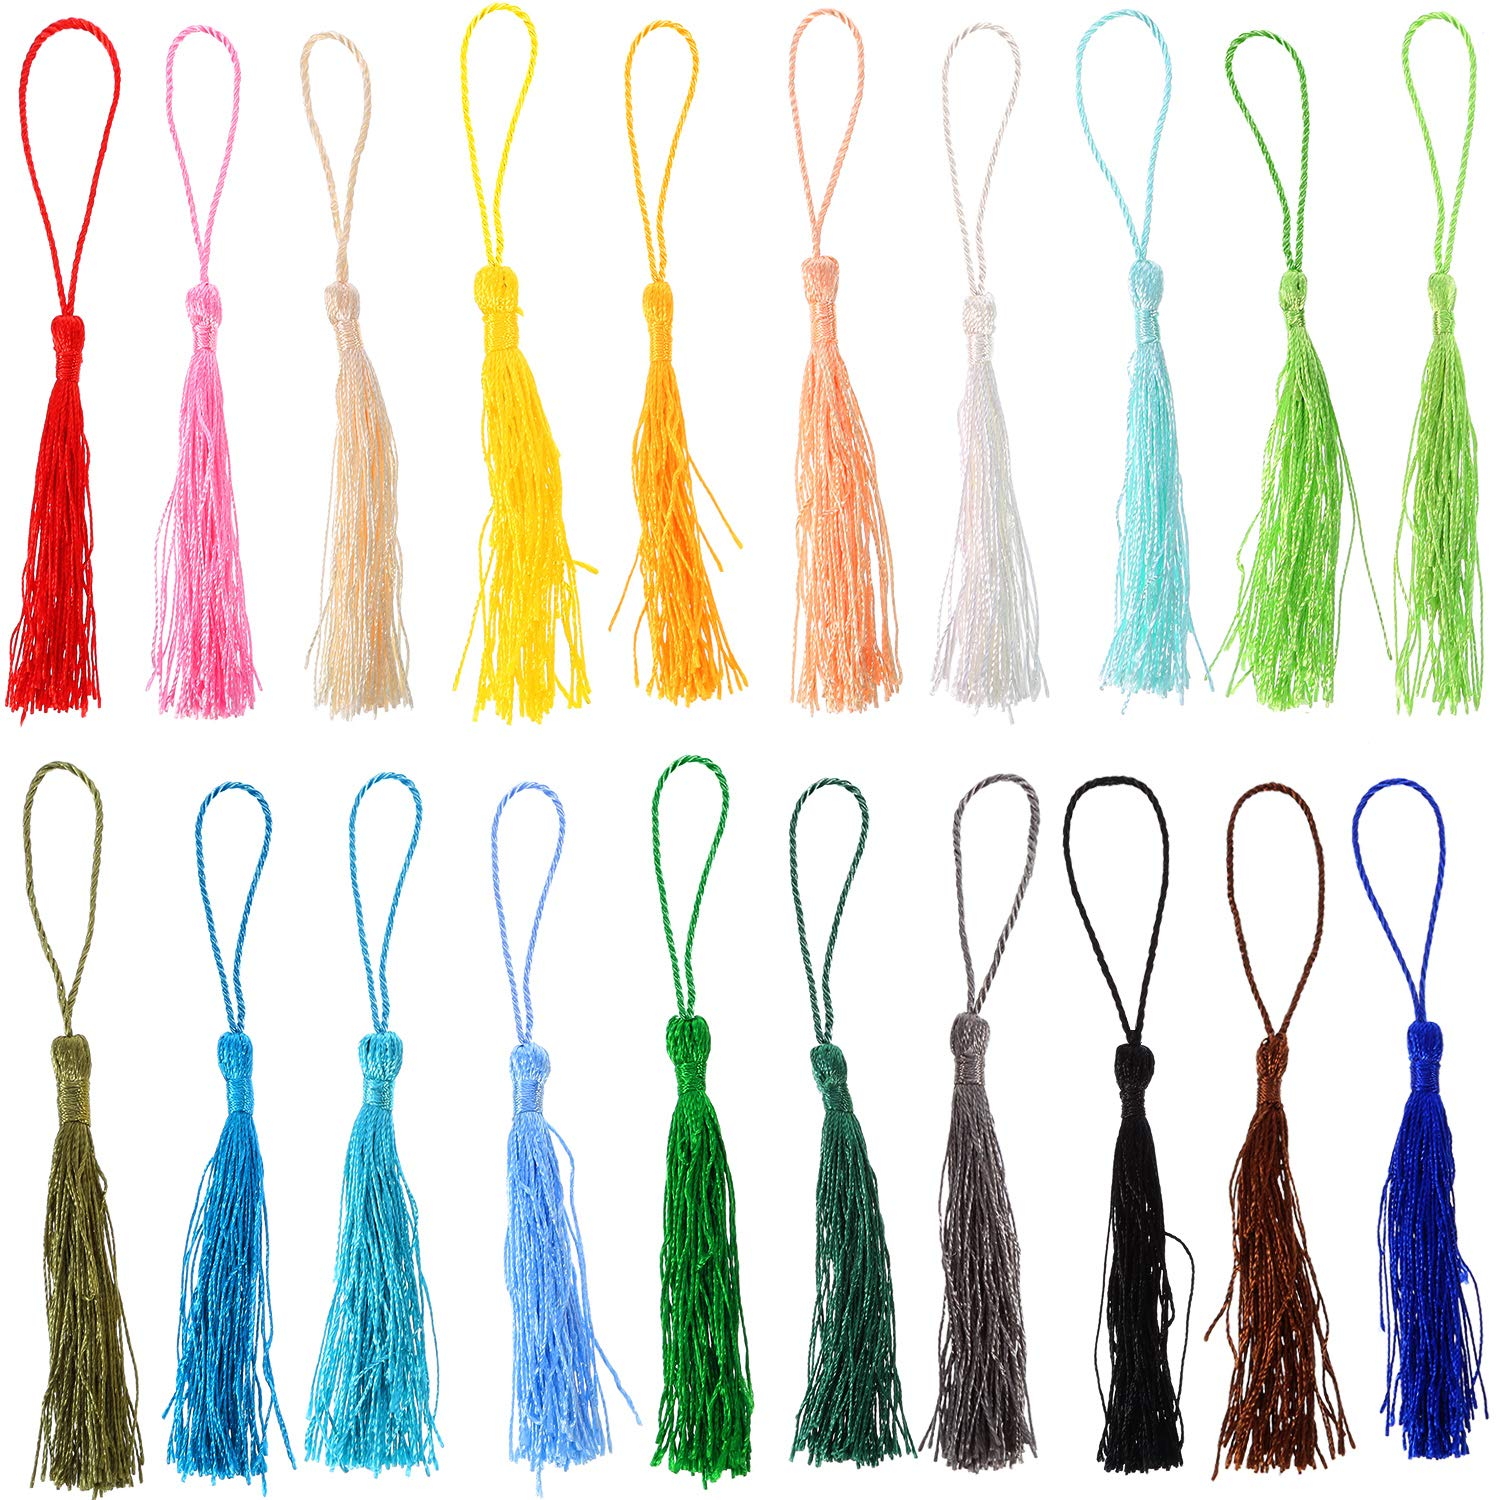 TecUnite 120 Pieces 13 cm/ 5 inch Handmade Silky Soft Craft Mini Tassels with Loops for DIY Projects, Jewelry Making, Decoration, Bookmarks, 20 Colors, 6 Pieces Each Color 4337038518